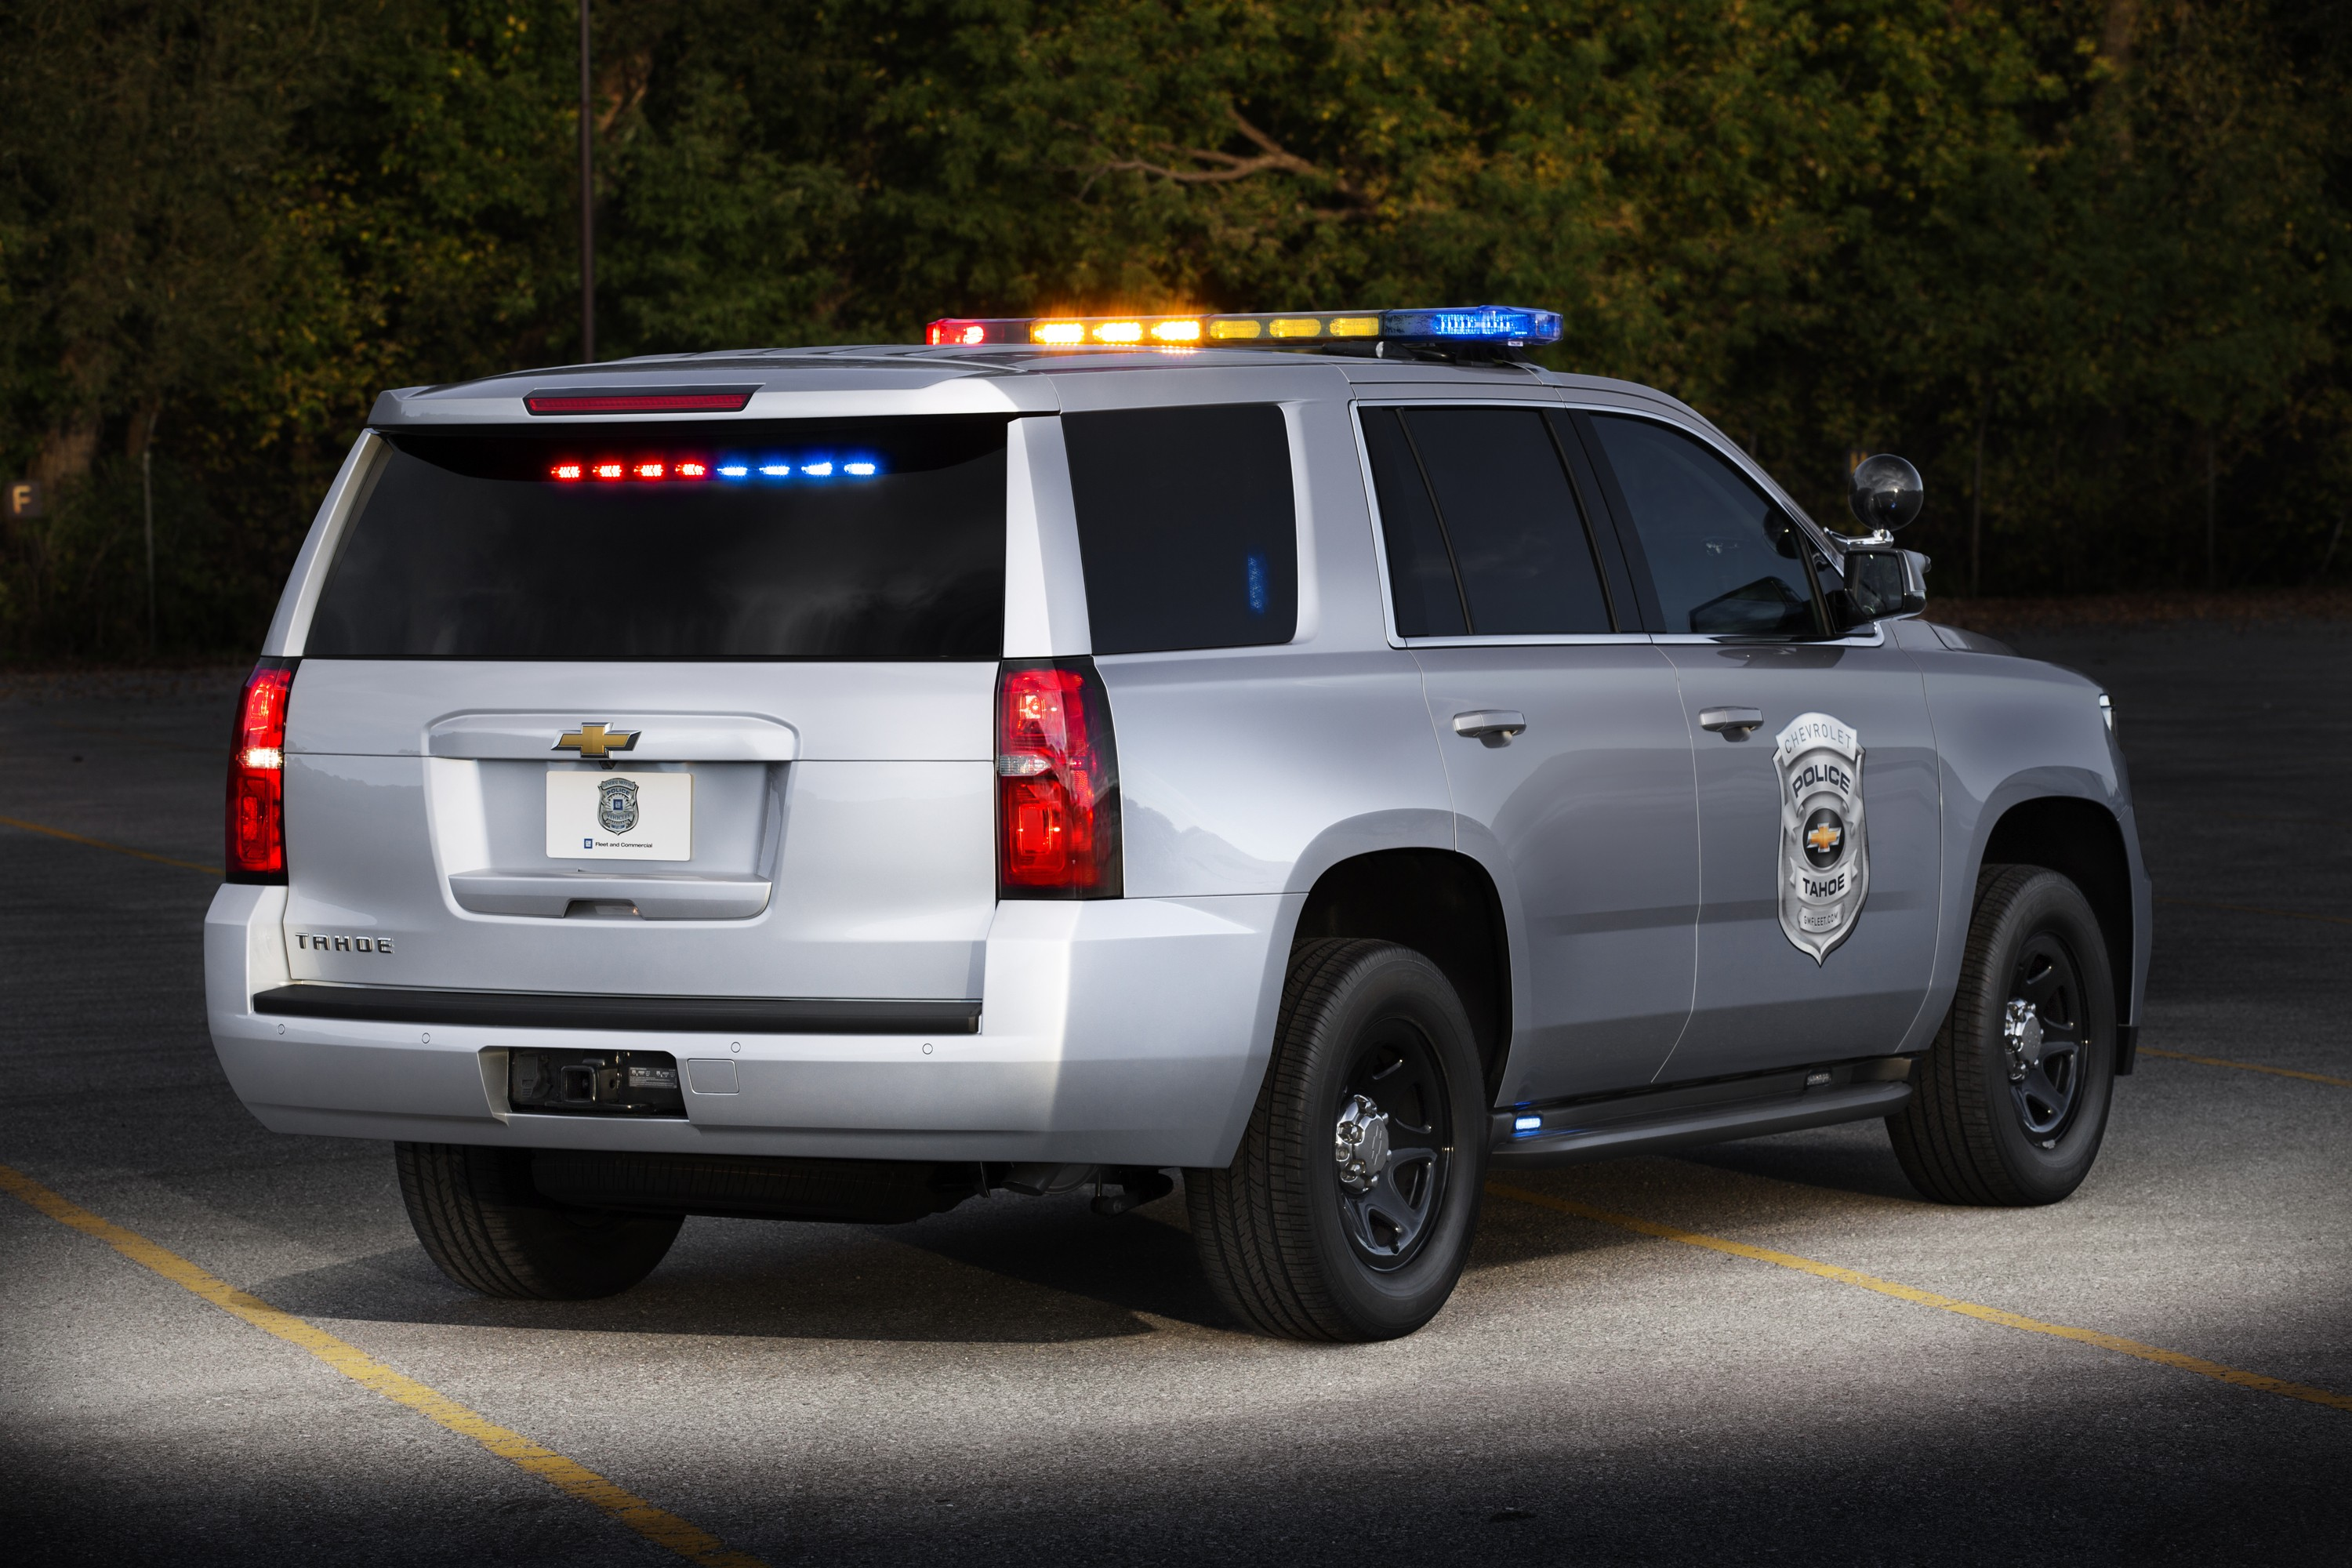 truck news spied front tahoe trend in motion prevnext chevrolet testing caught michigan future view trucks